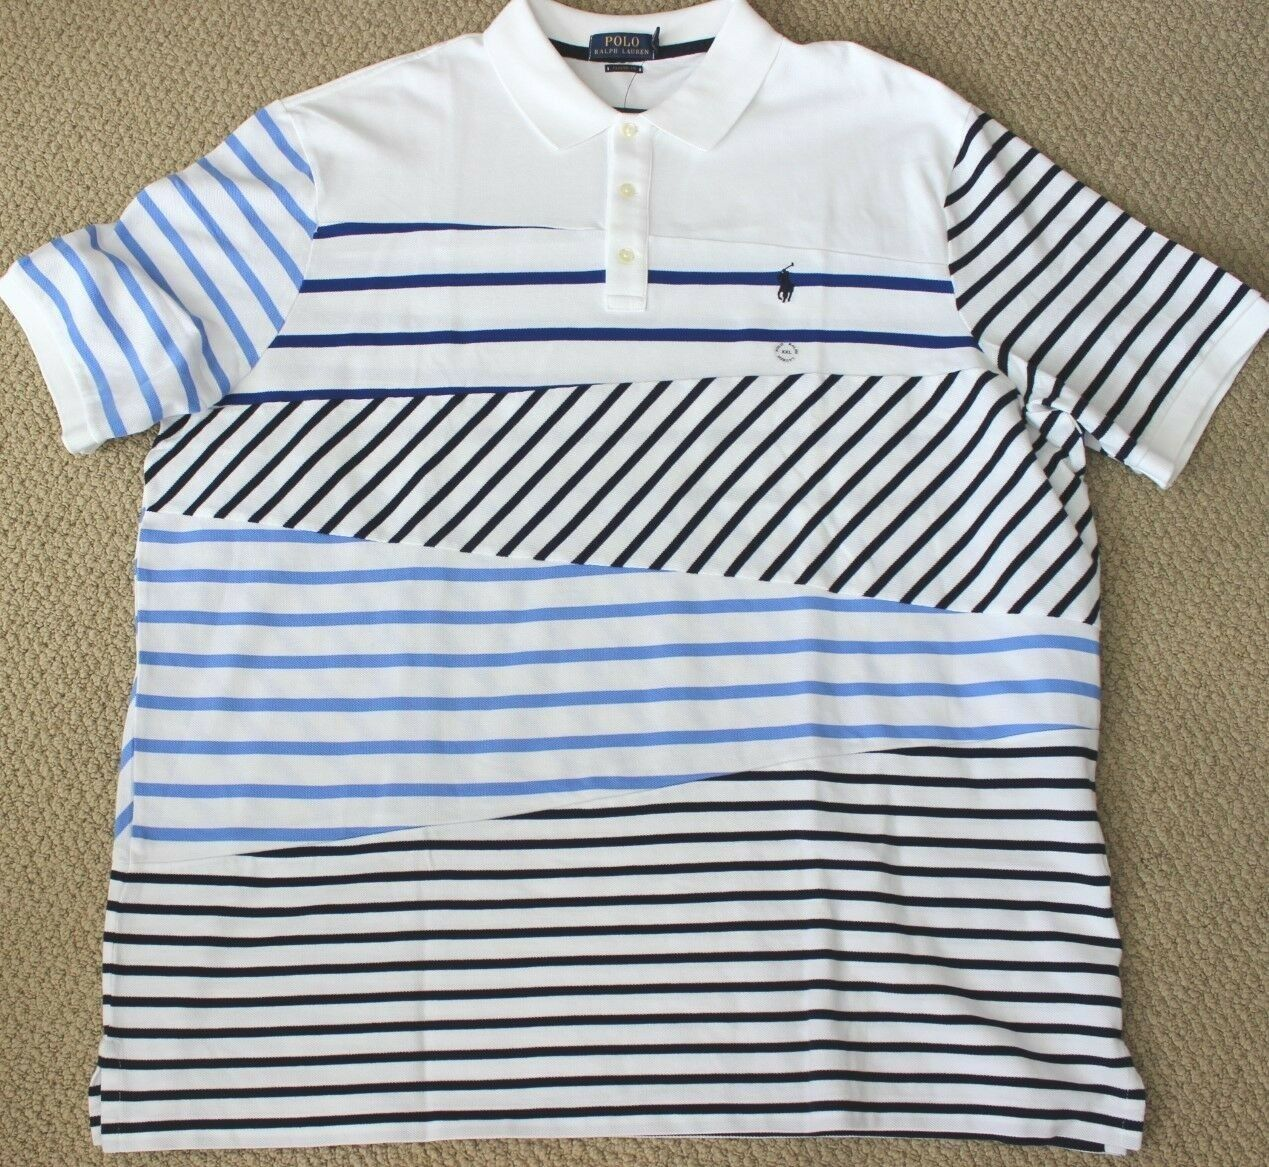 Polo Ralph Lauren Patchwork Shirt XXL S S Men's NWT White bluee Striped Classic